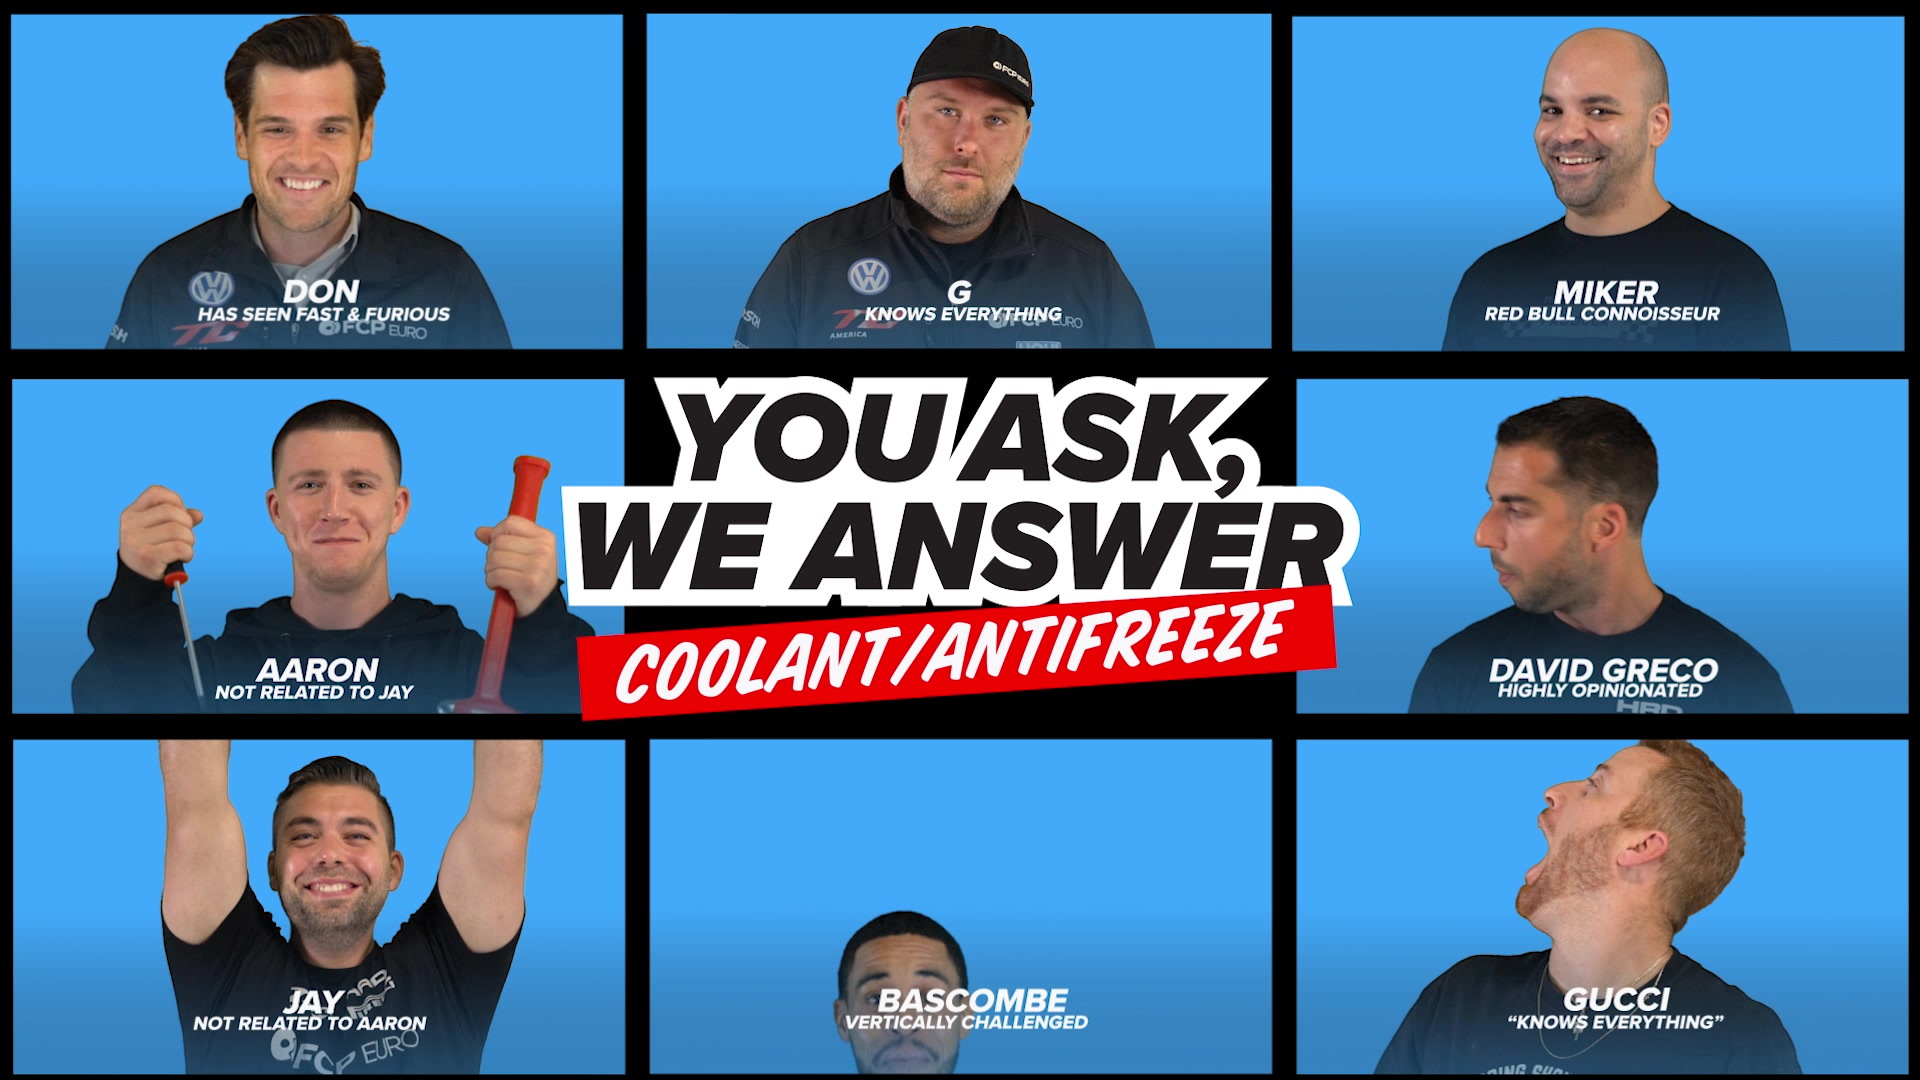 You Had Questions About Coolant/Antifreeze, And We Answered Them